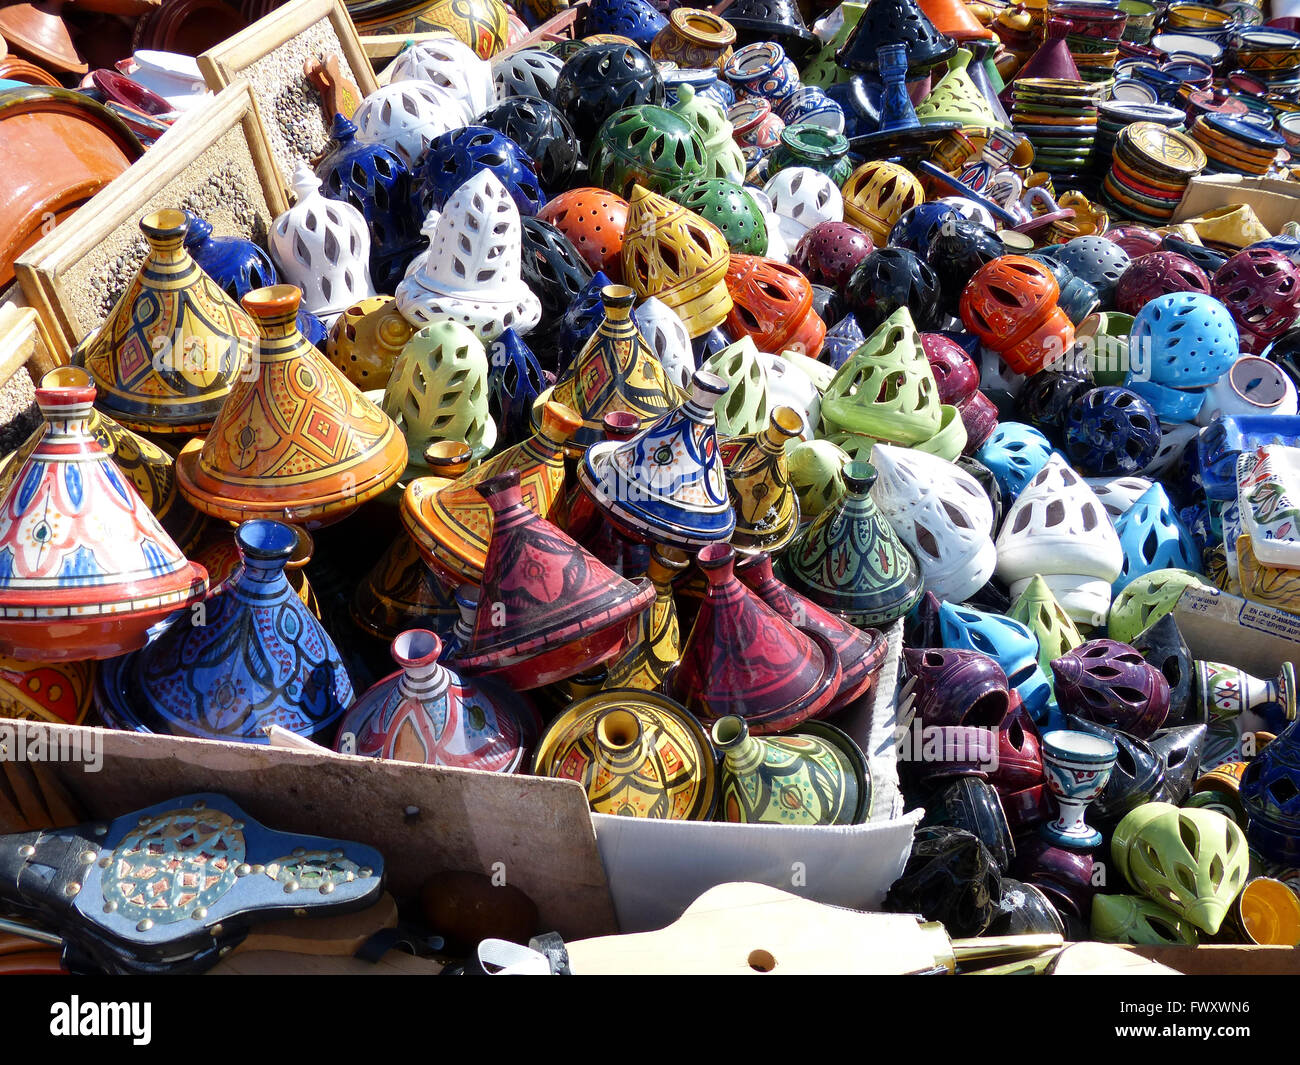 Tagine traditional Moroccan earthenware pot are sold in the markets around Morocco - Stock Image